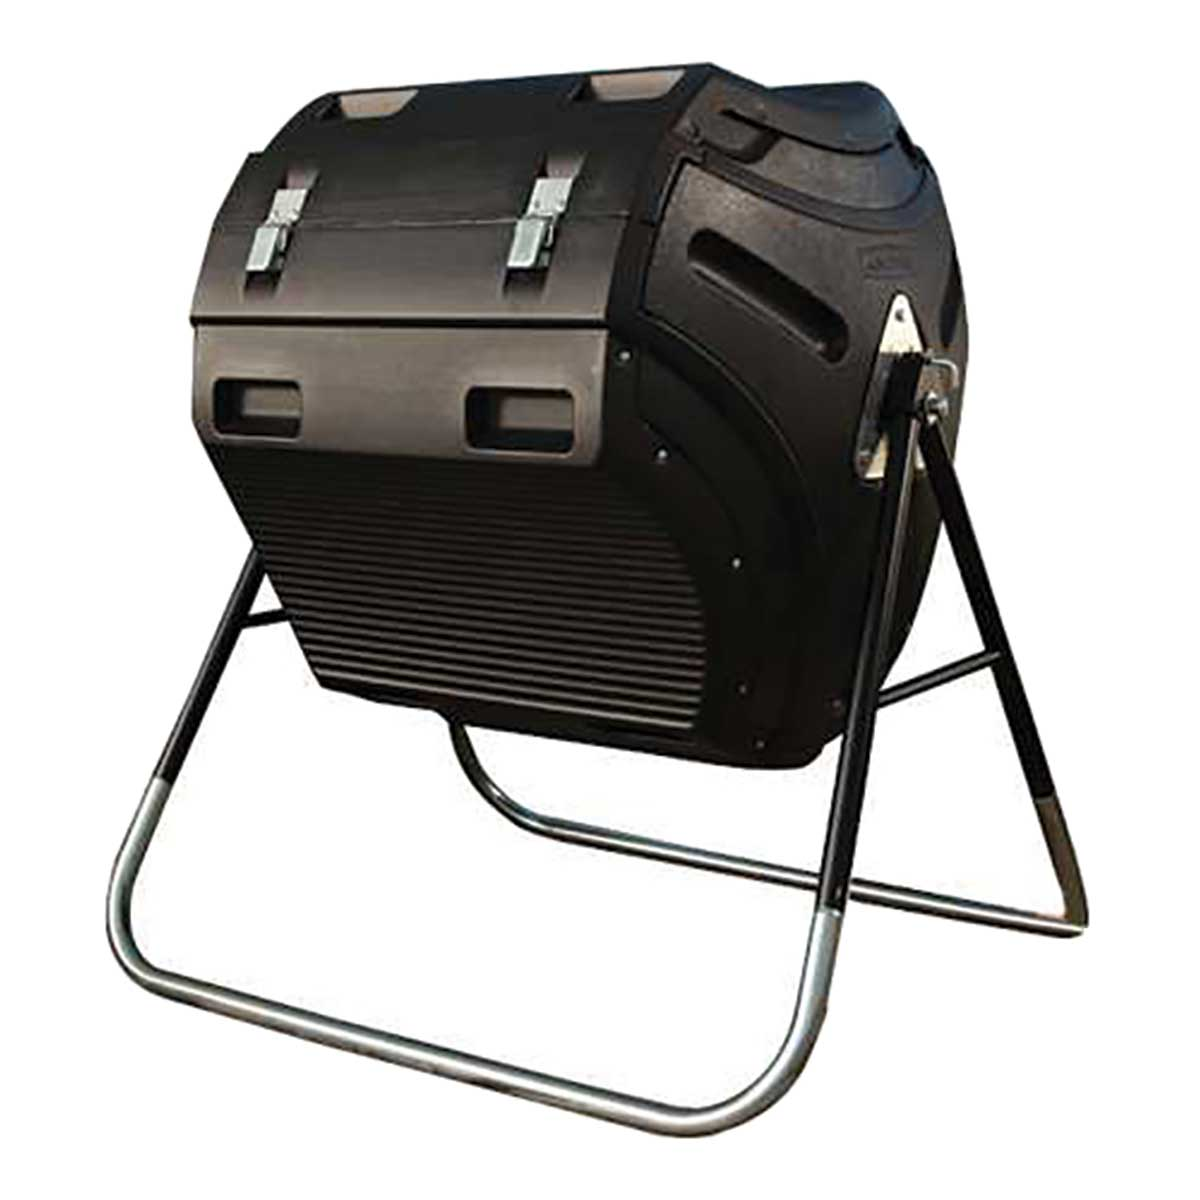 Lifetime Rotating Composter (80 gallon)